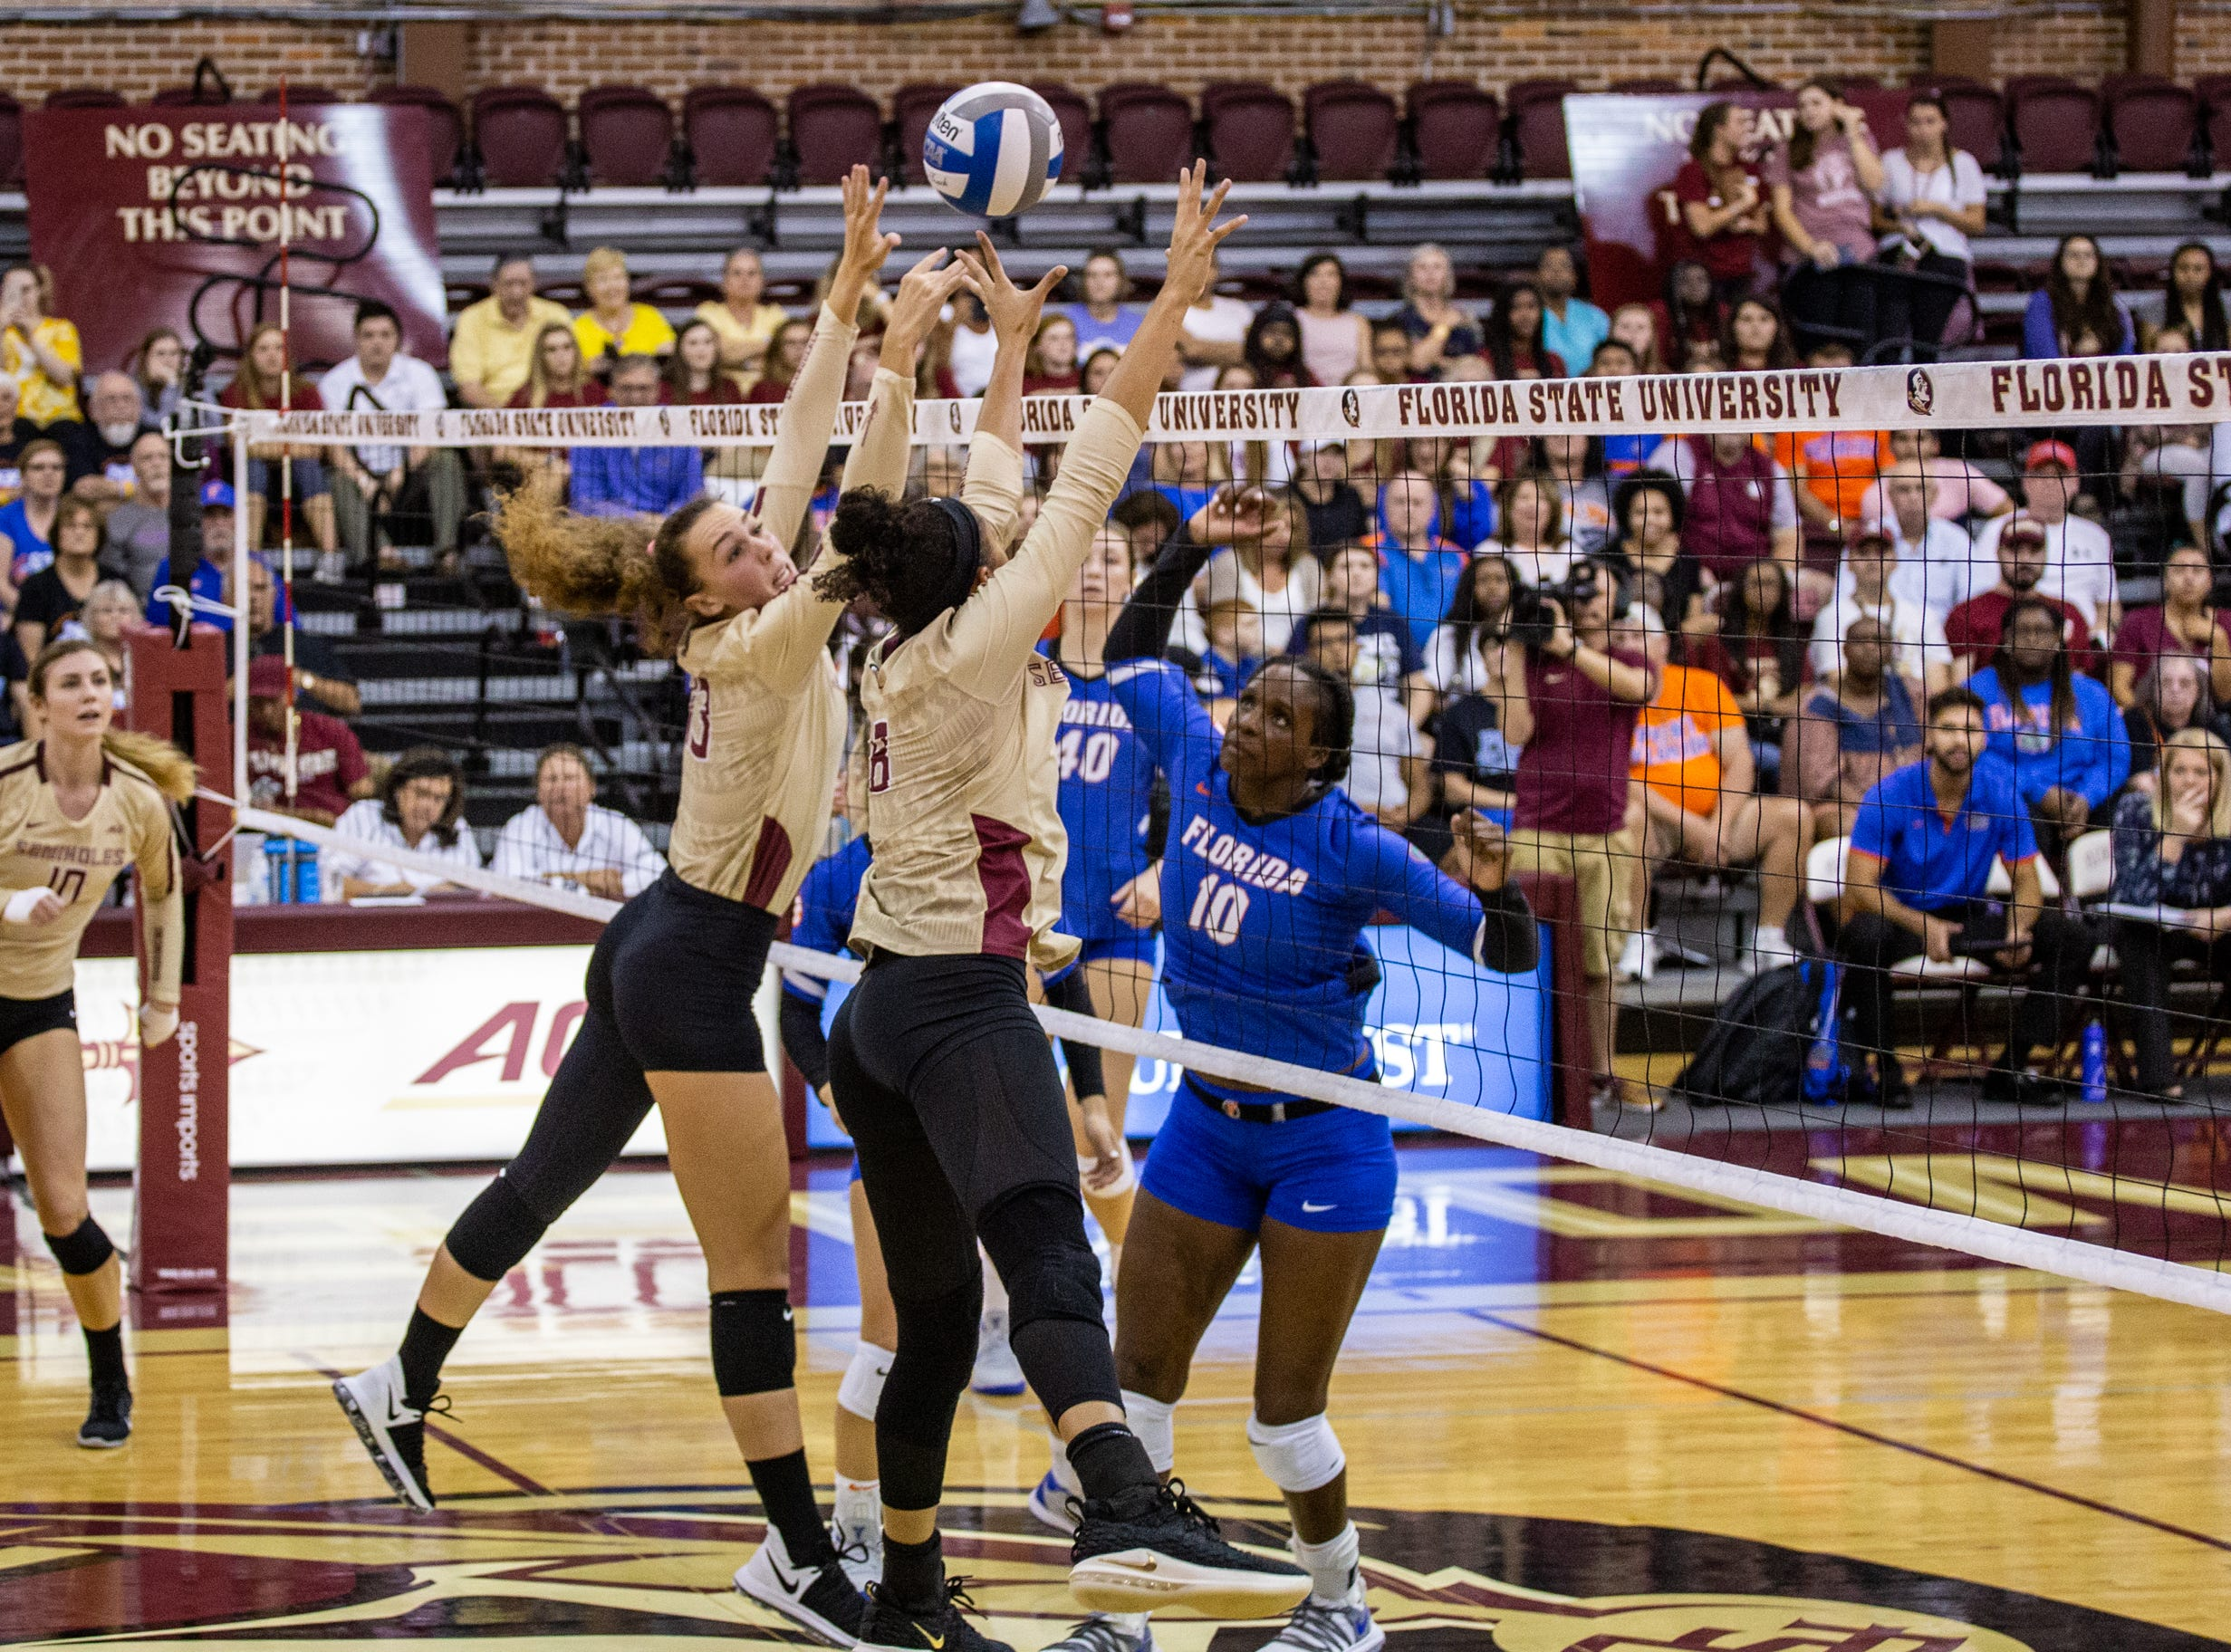 Morgan Chacon (3) and Tiana Jackson (8), block a spike sent over the net by UF's Taelor Kellum (10) during the first set against Florida at Tully Gymnasium on Wednesday.